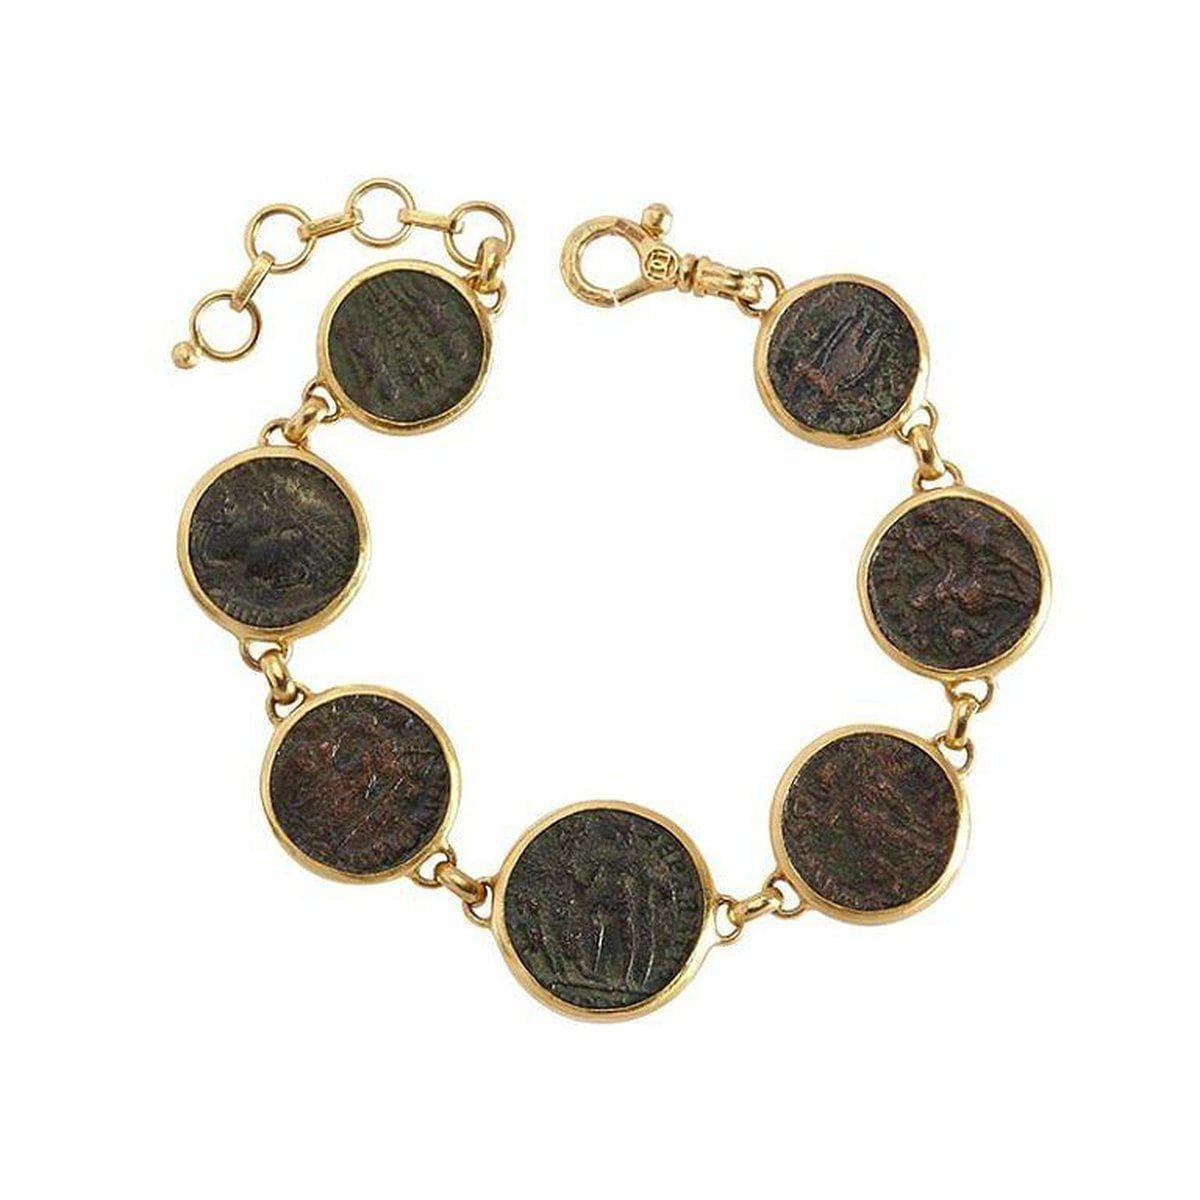 Antiquities 24K Gold Coin Bracelet - B-U26064-CN-GURHAN-Renee Taylor Gallery